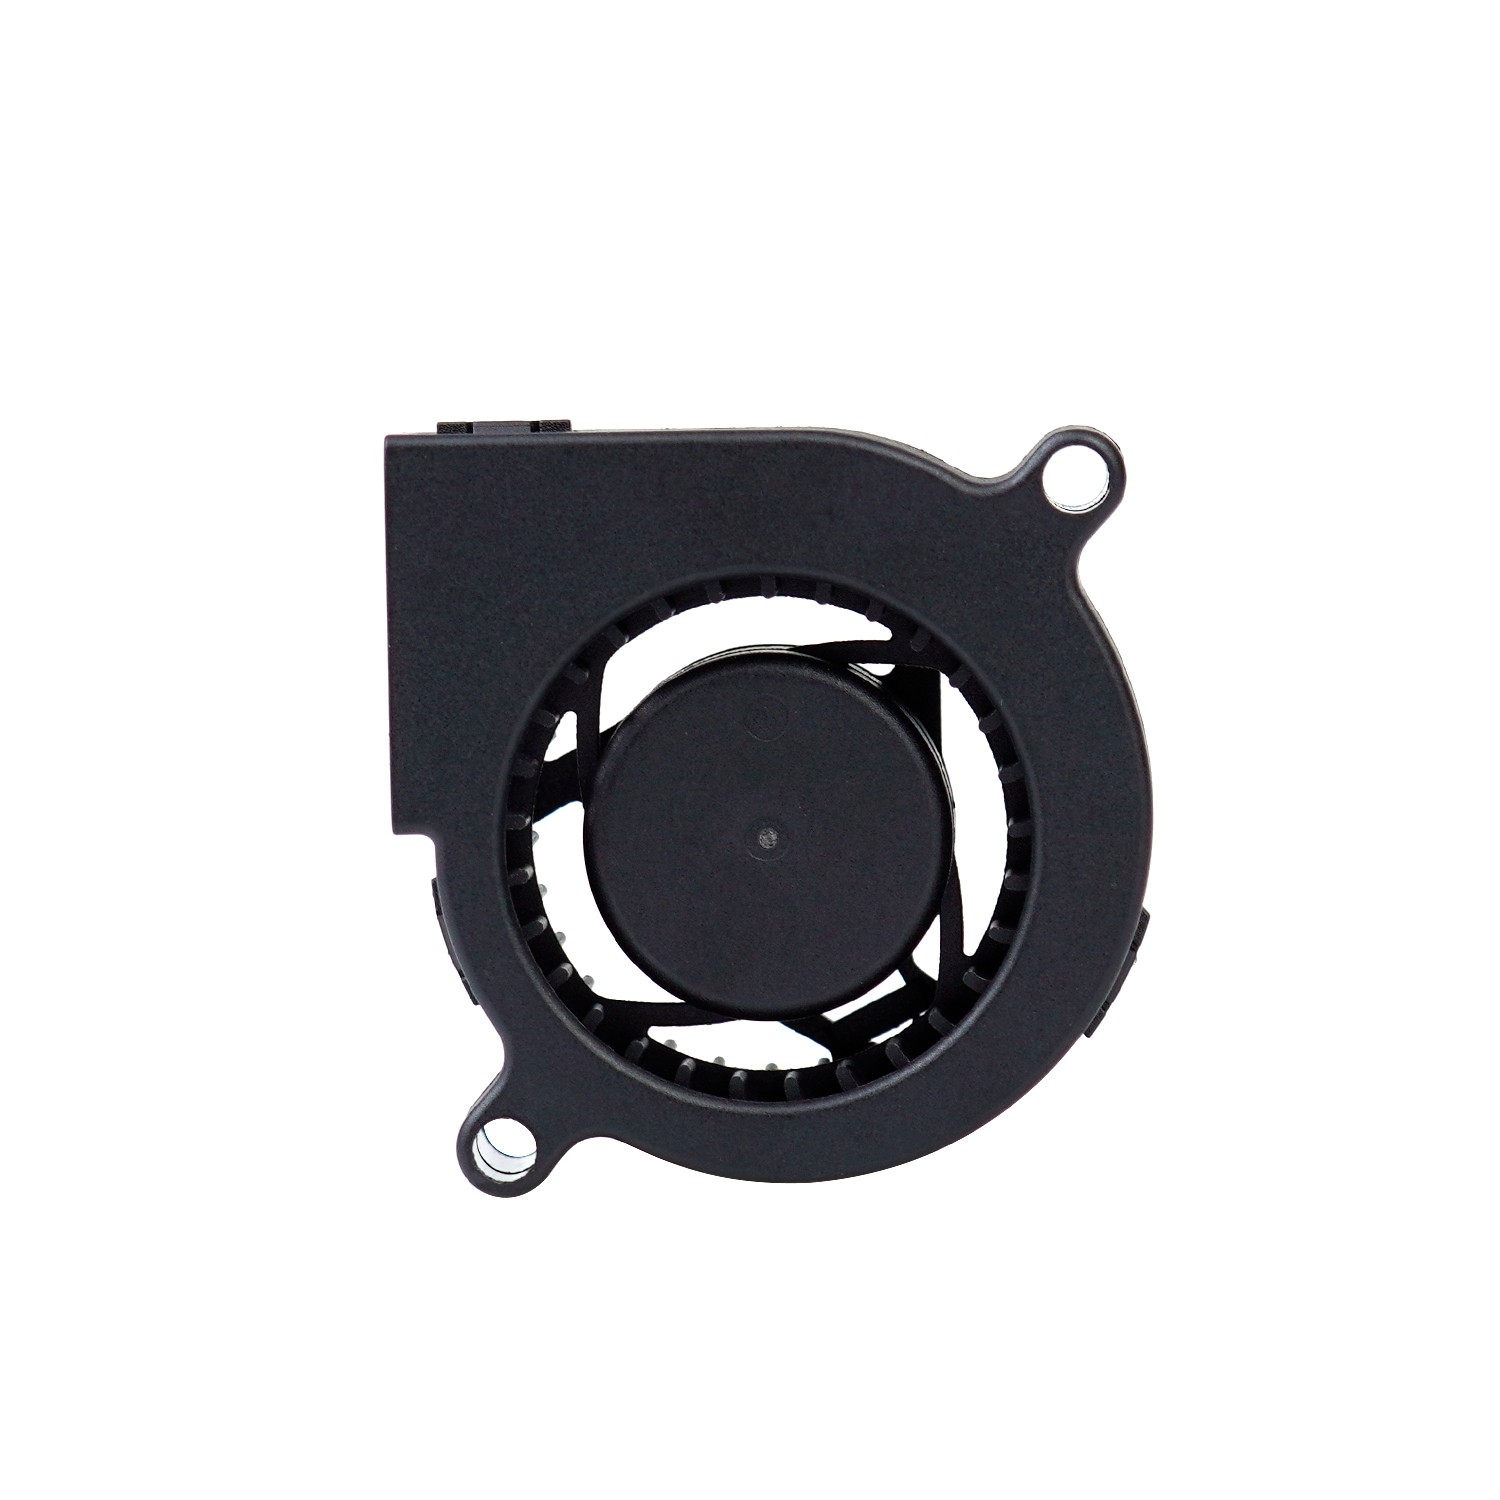 12 Volt Dc Blower Fan for Computer 50mm High Efficiency Cooling Fan from manufacturer